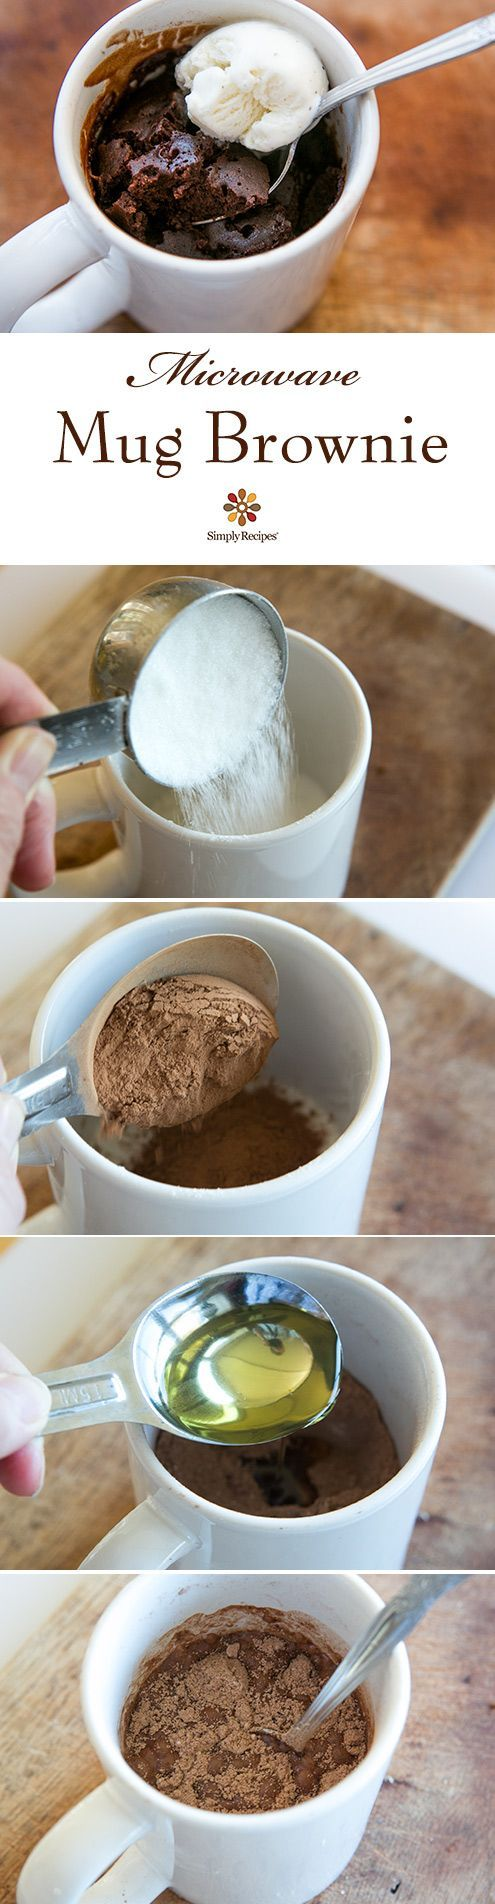 Brownie in a Mug ~ Easiest brownie ever, a single serving brownie microwaved in a mug. ~ SimplyRecipes.com